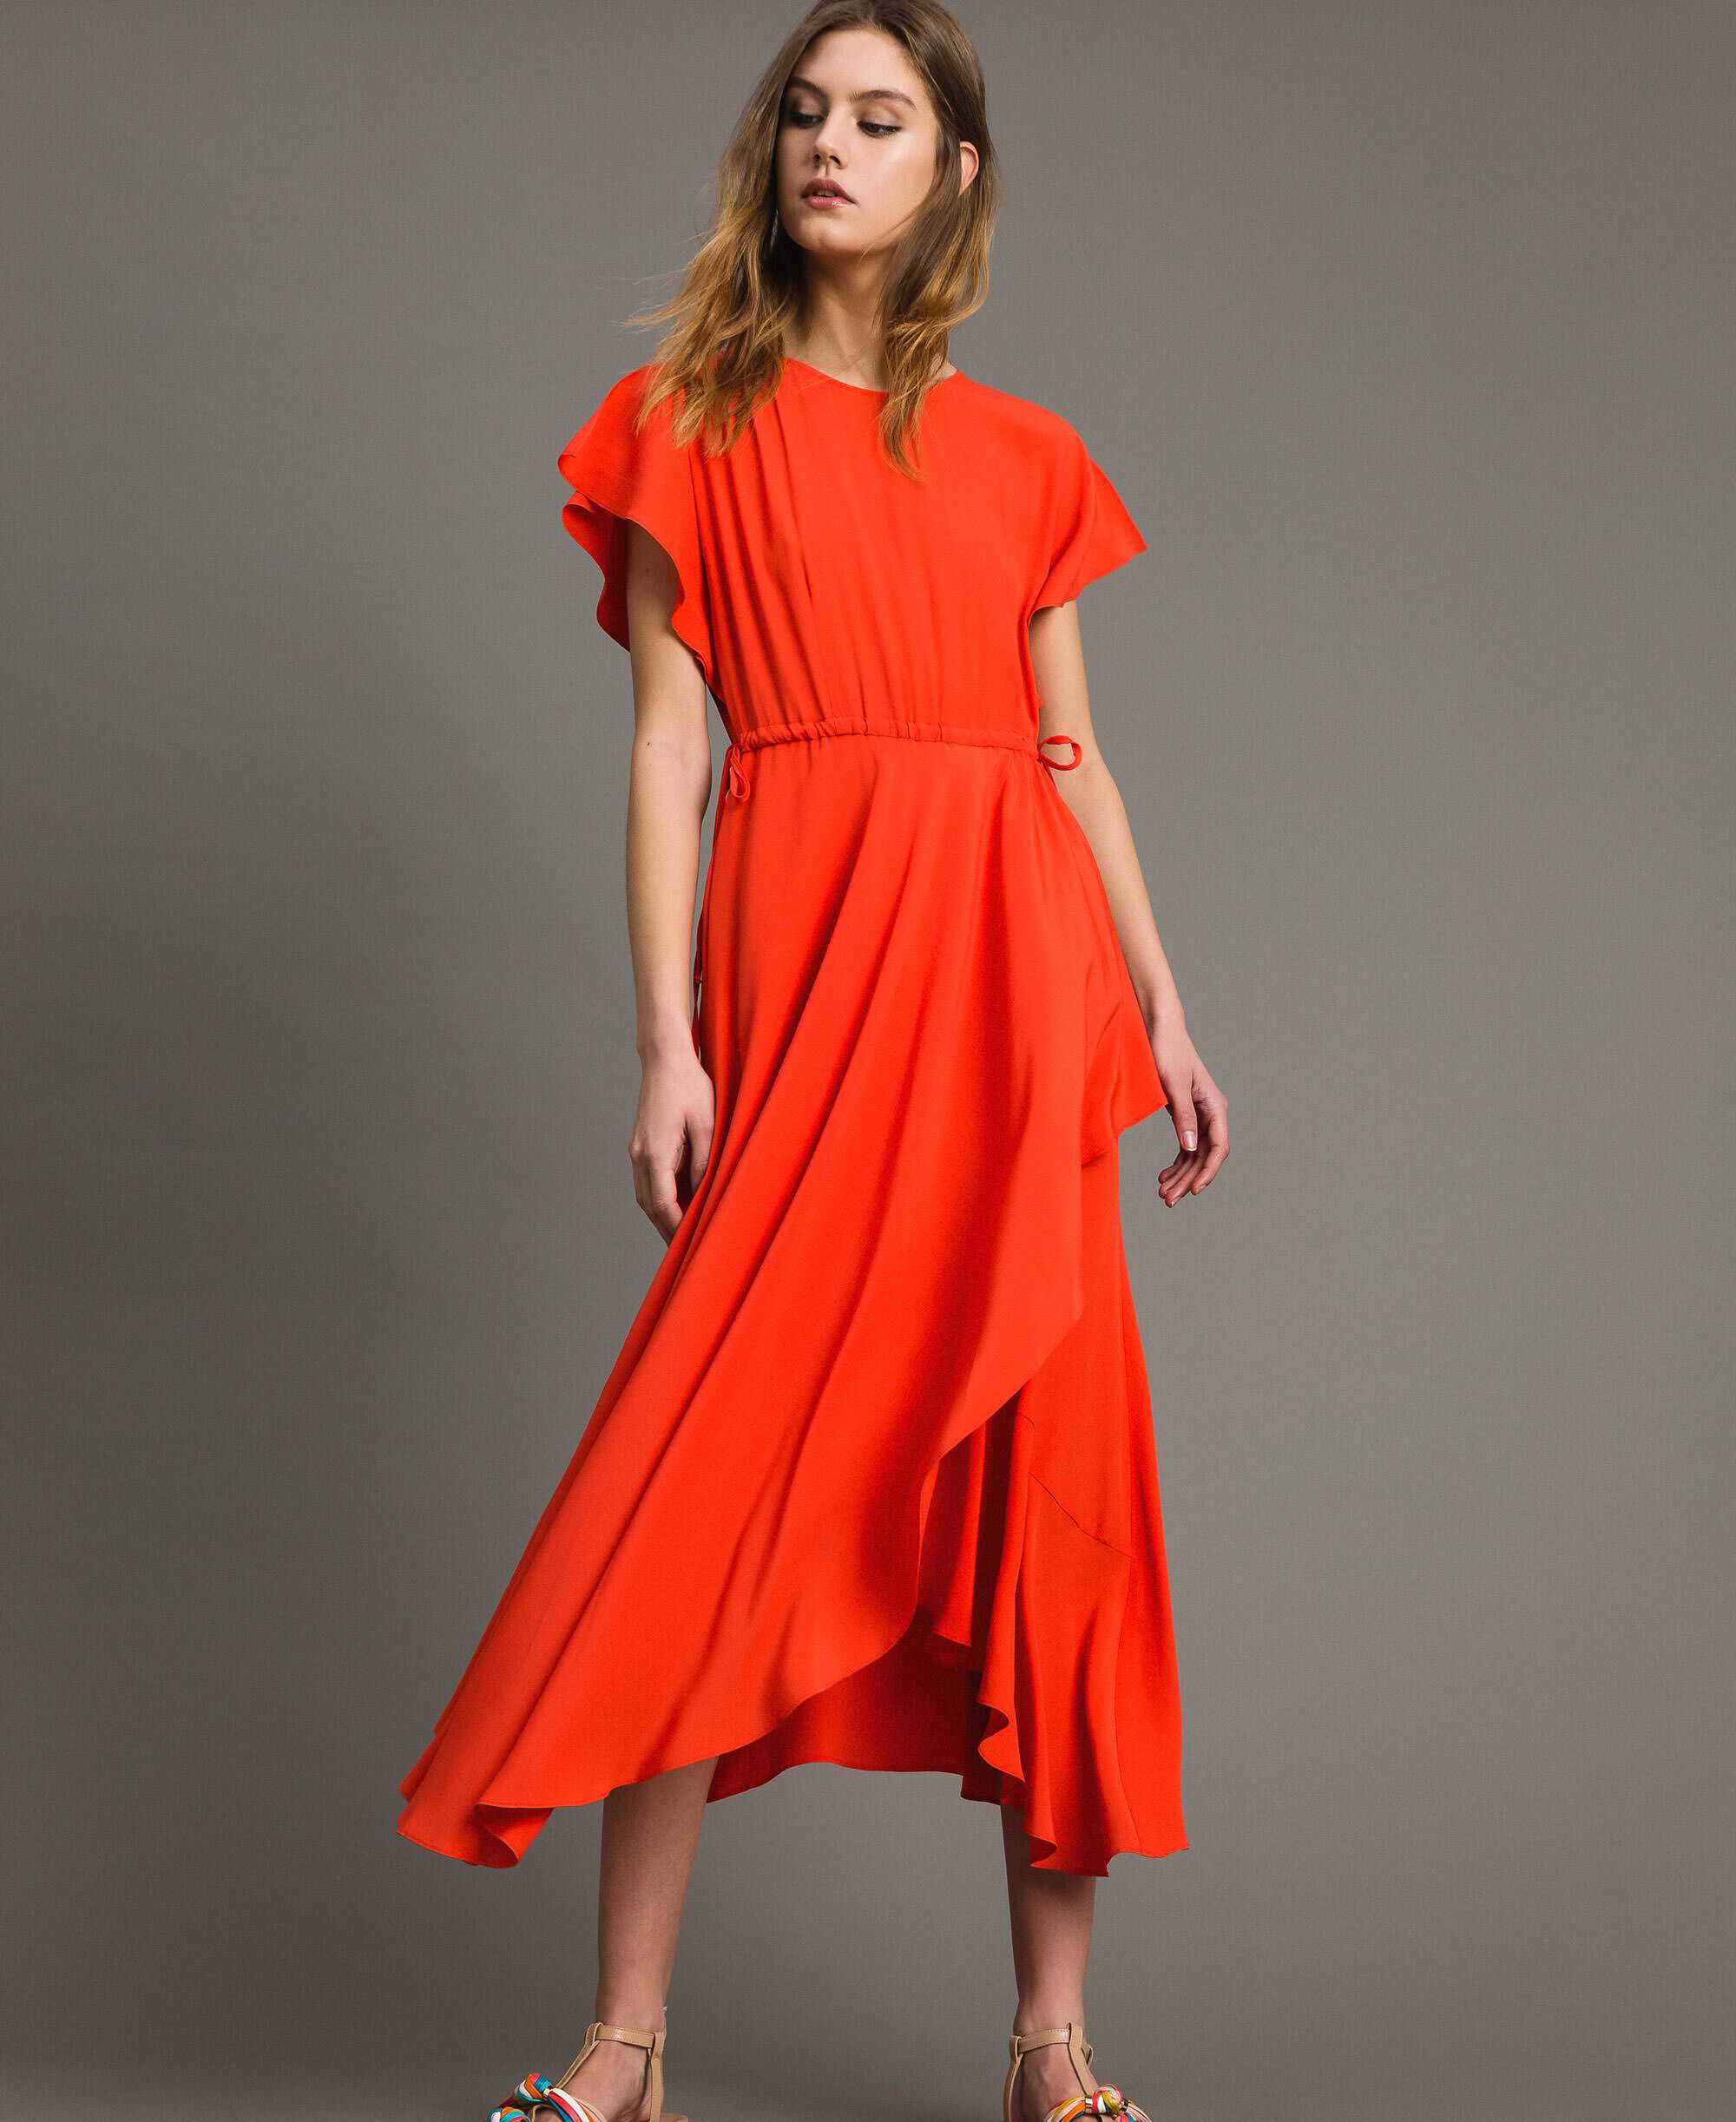 a3f630b212 Dresses Woman - Clothing Spring Summer 2019